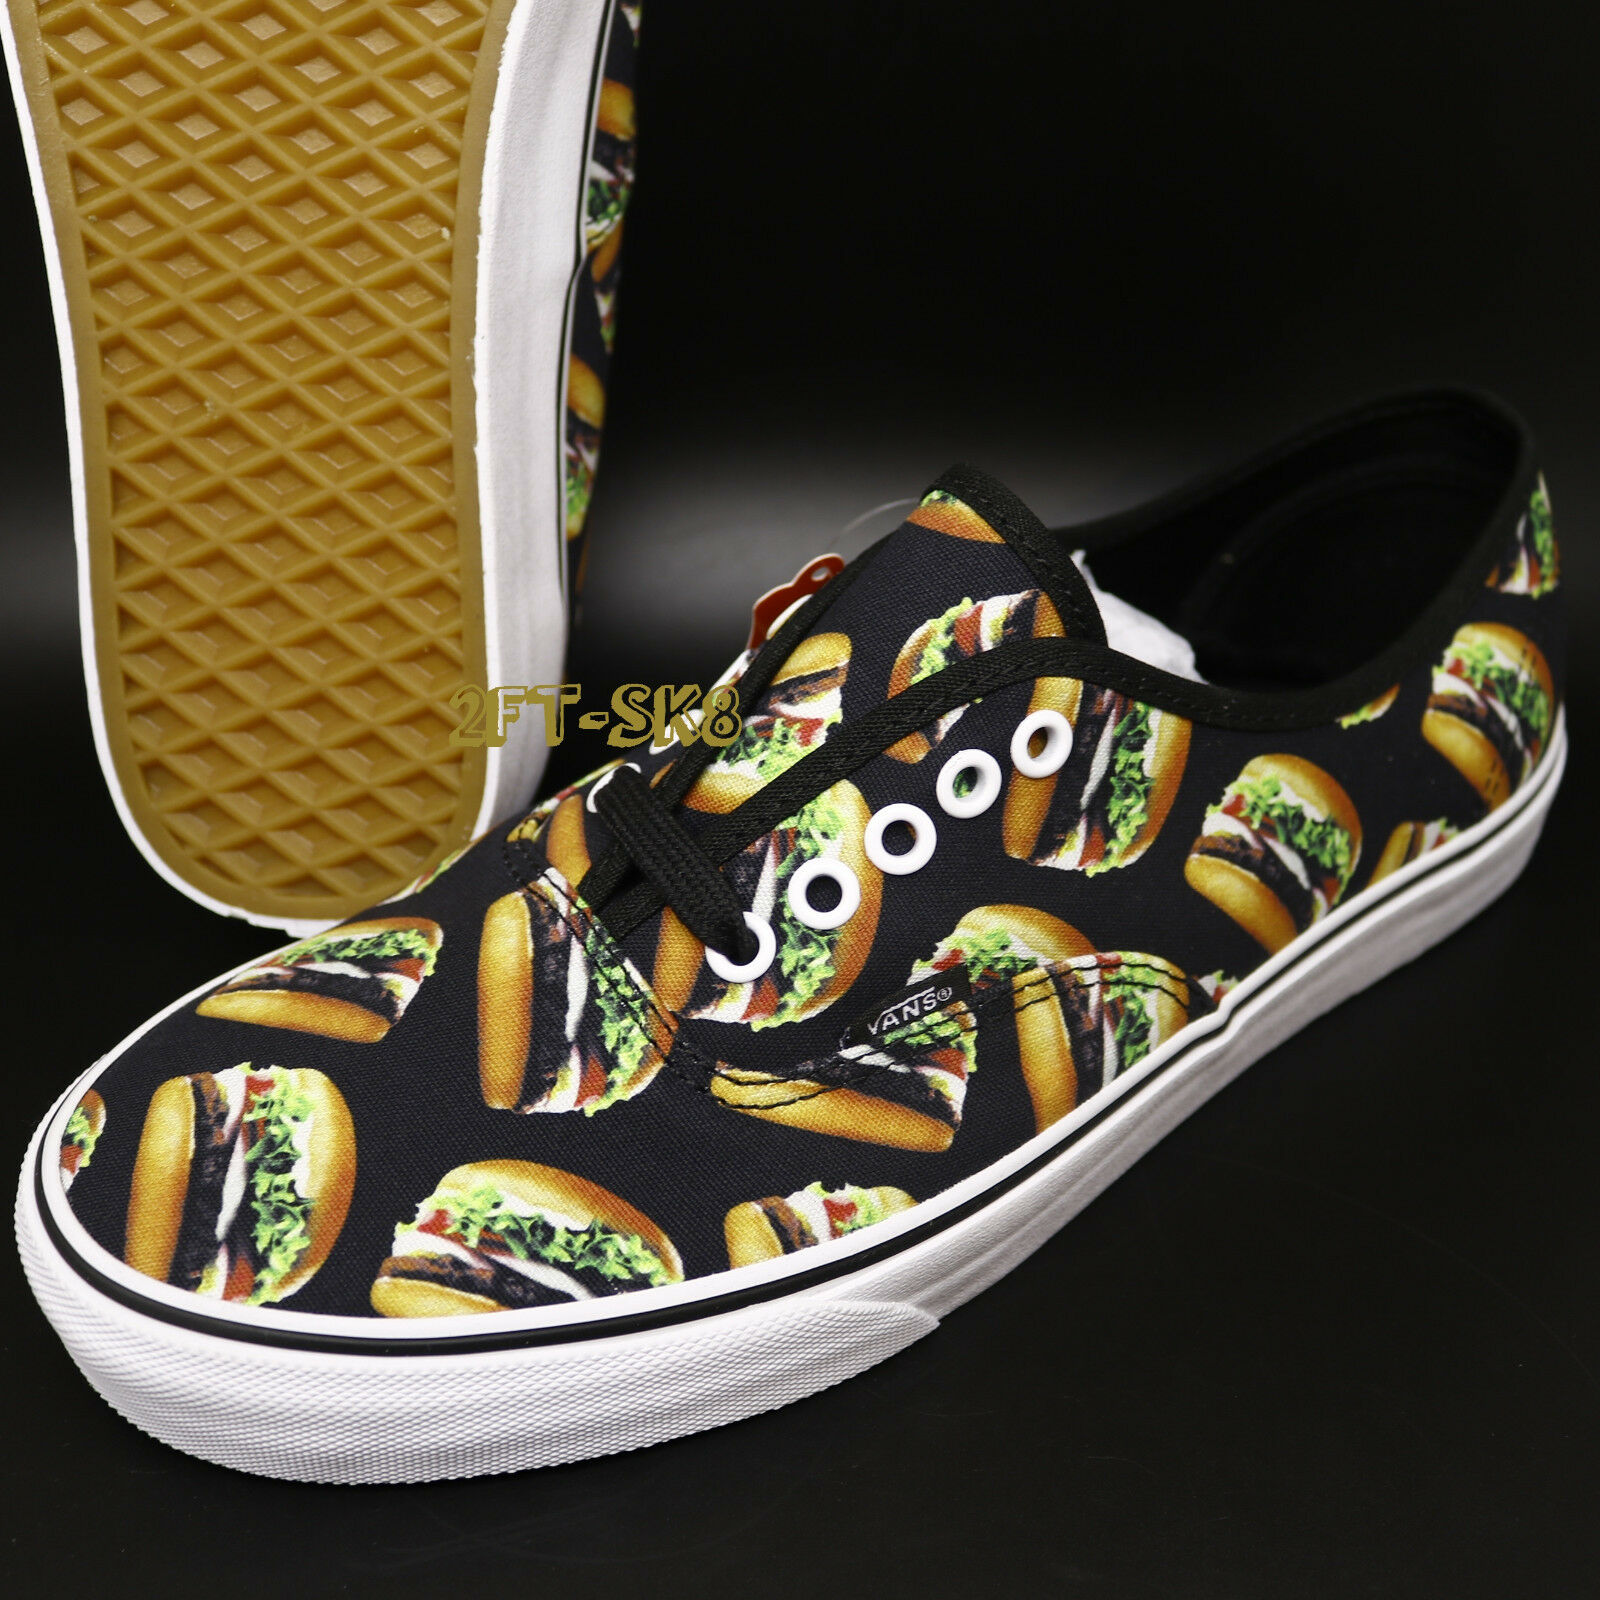 Vans Authentic Late Night noir Hamburgers hommes SKATE Chaussures //burger S89116.128